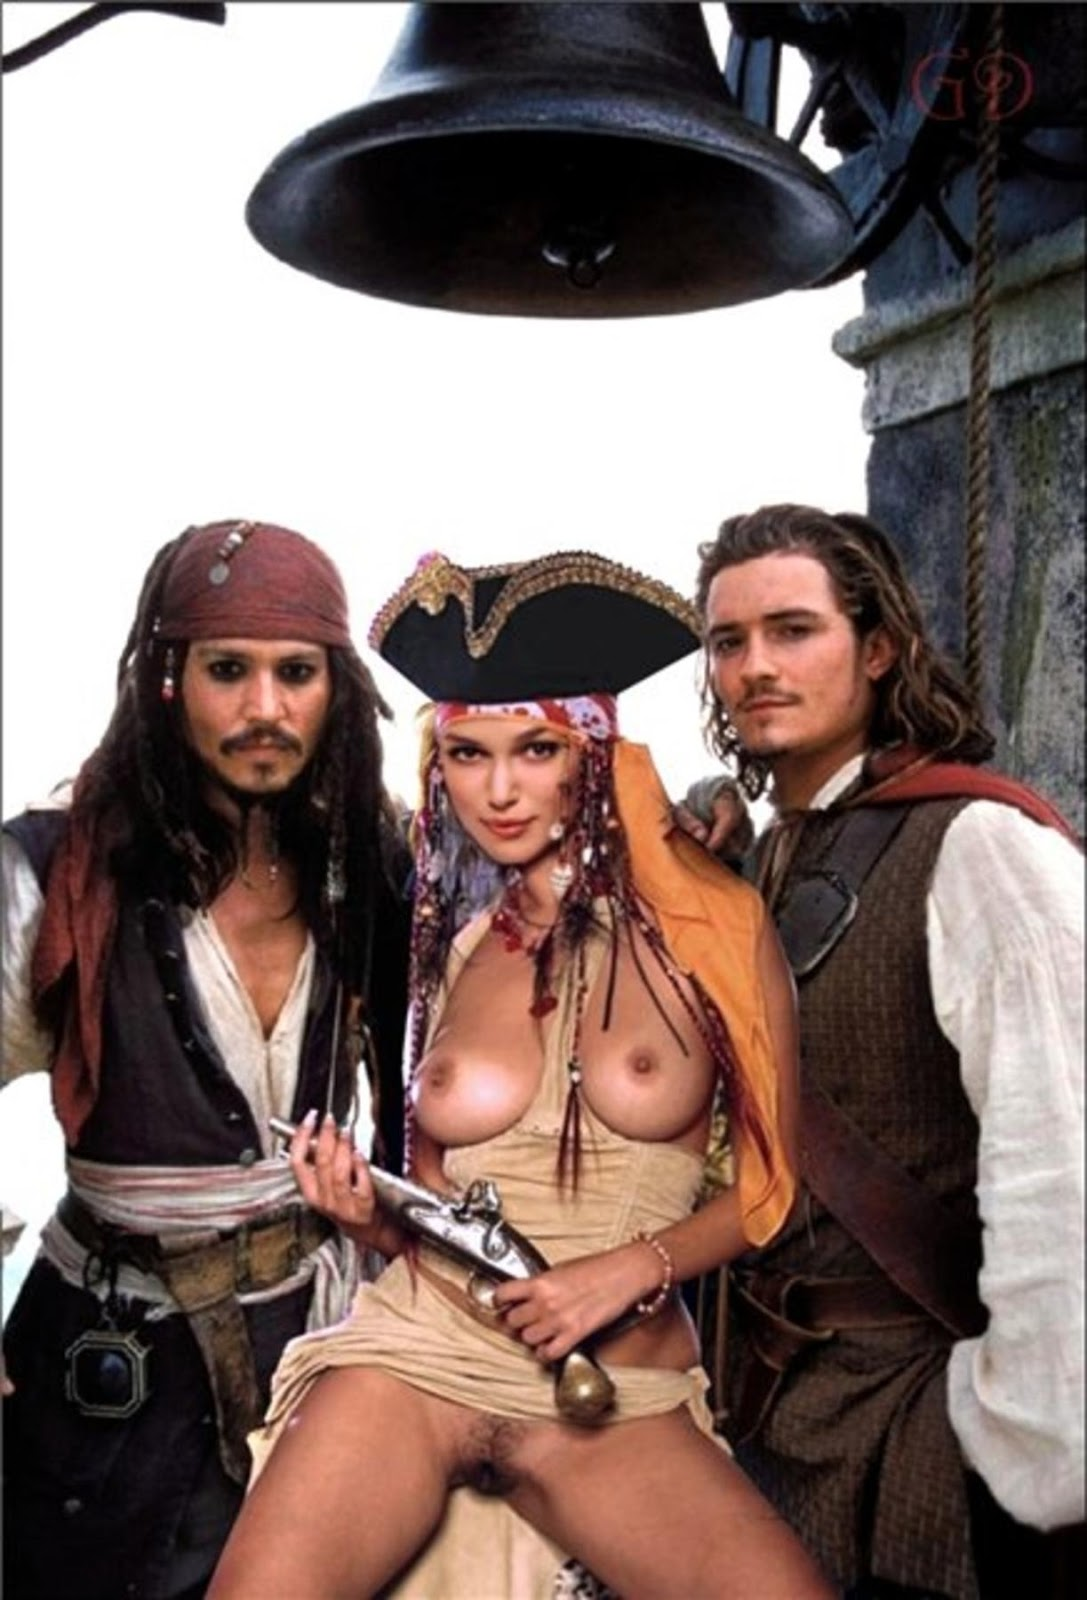 Sex xx pirates of the caribbean softcore scene